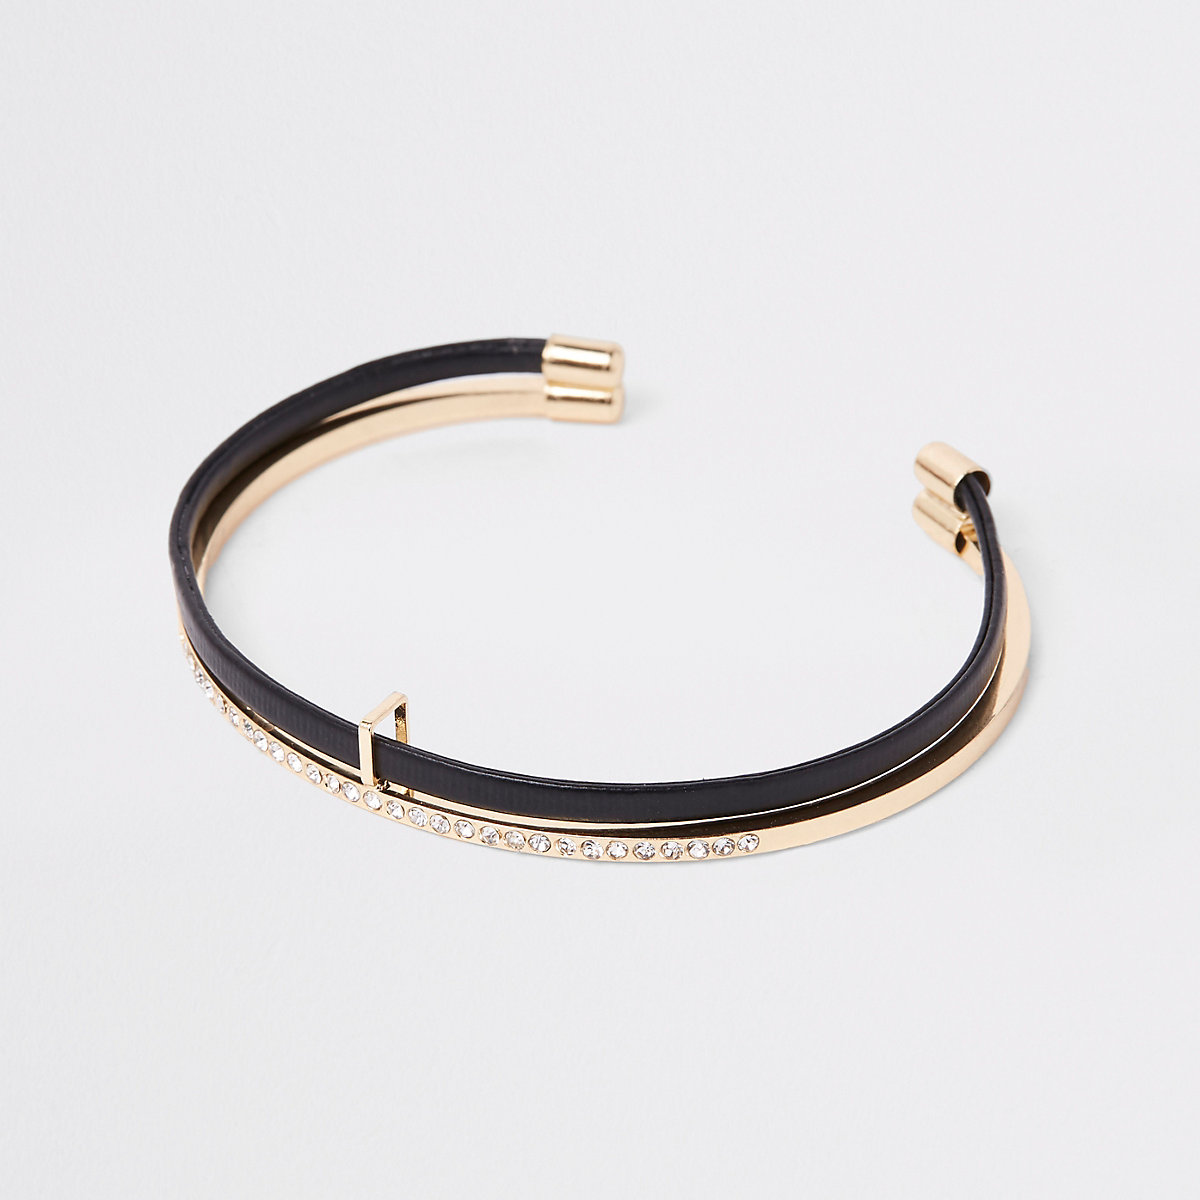 Gold tone double layered cuff bracelet